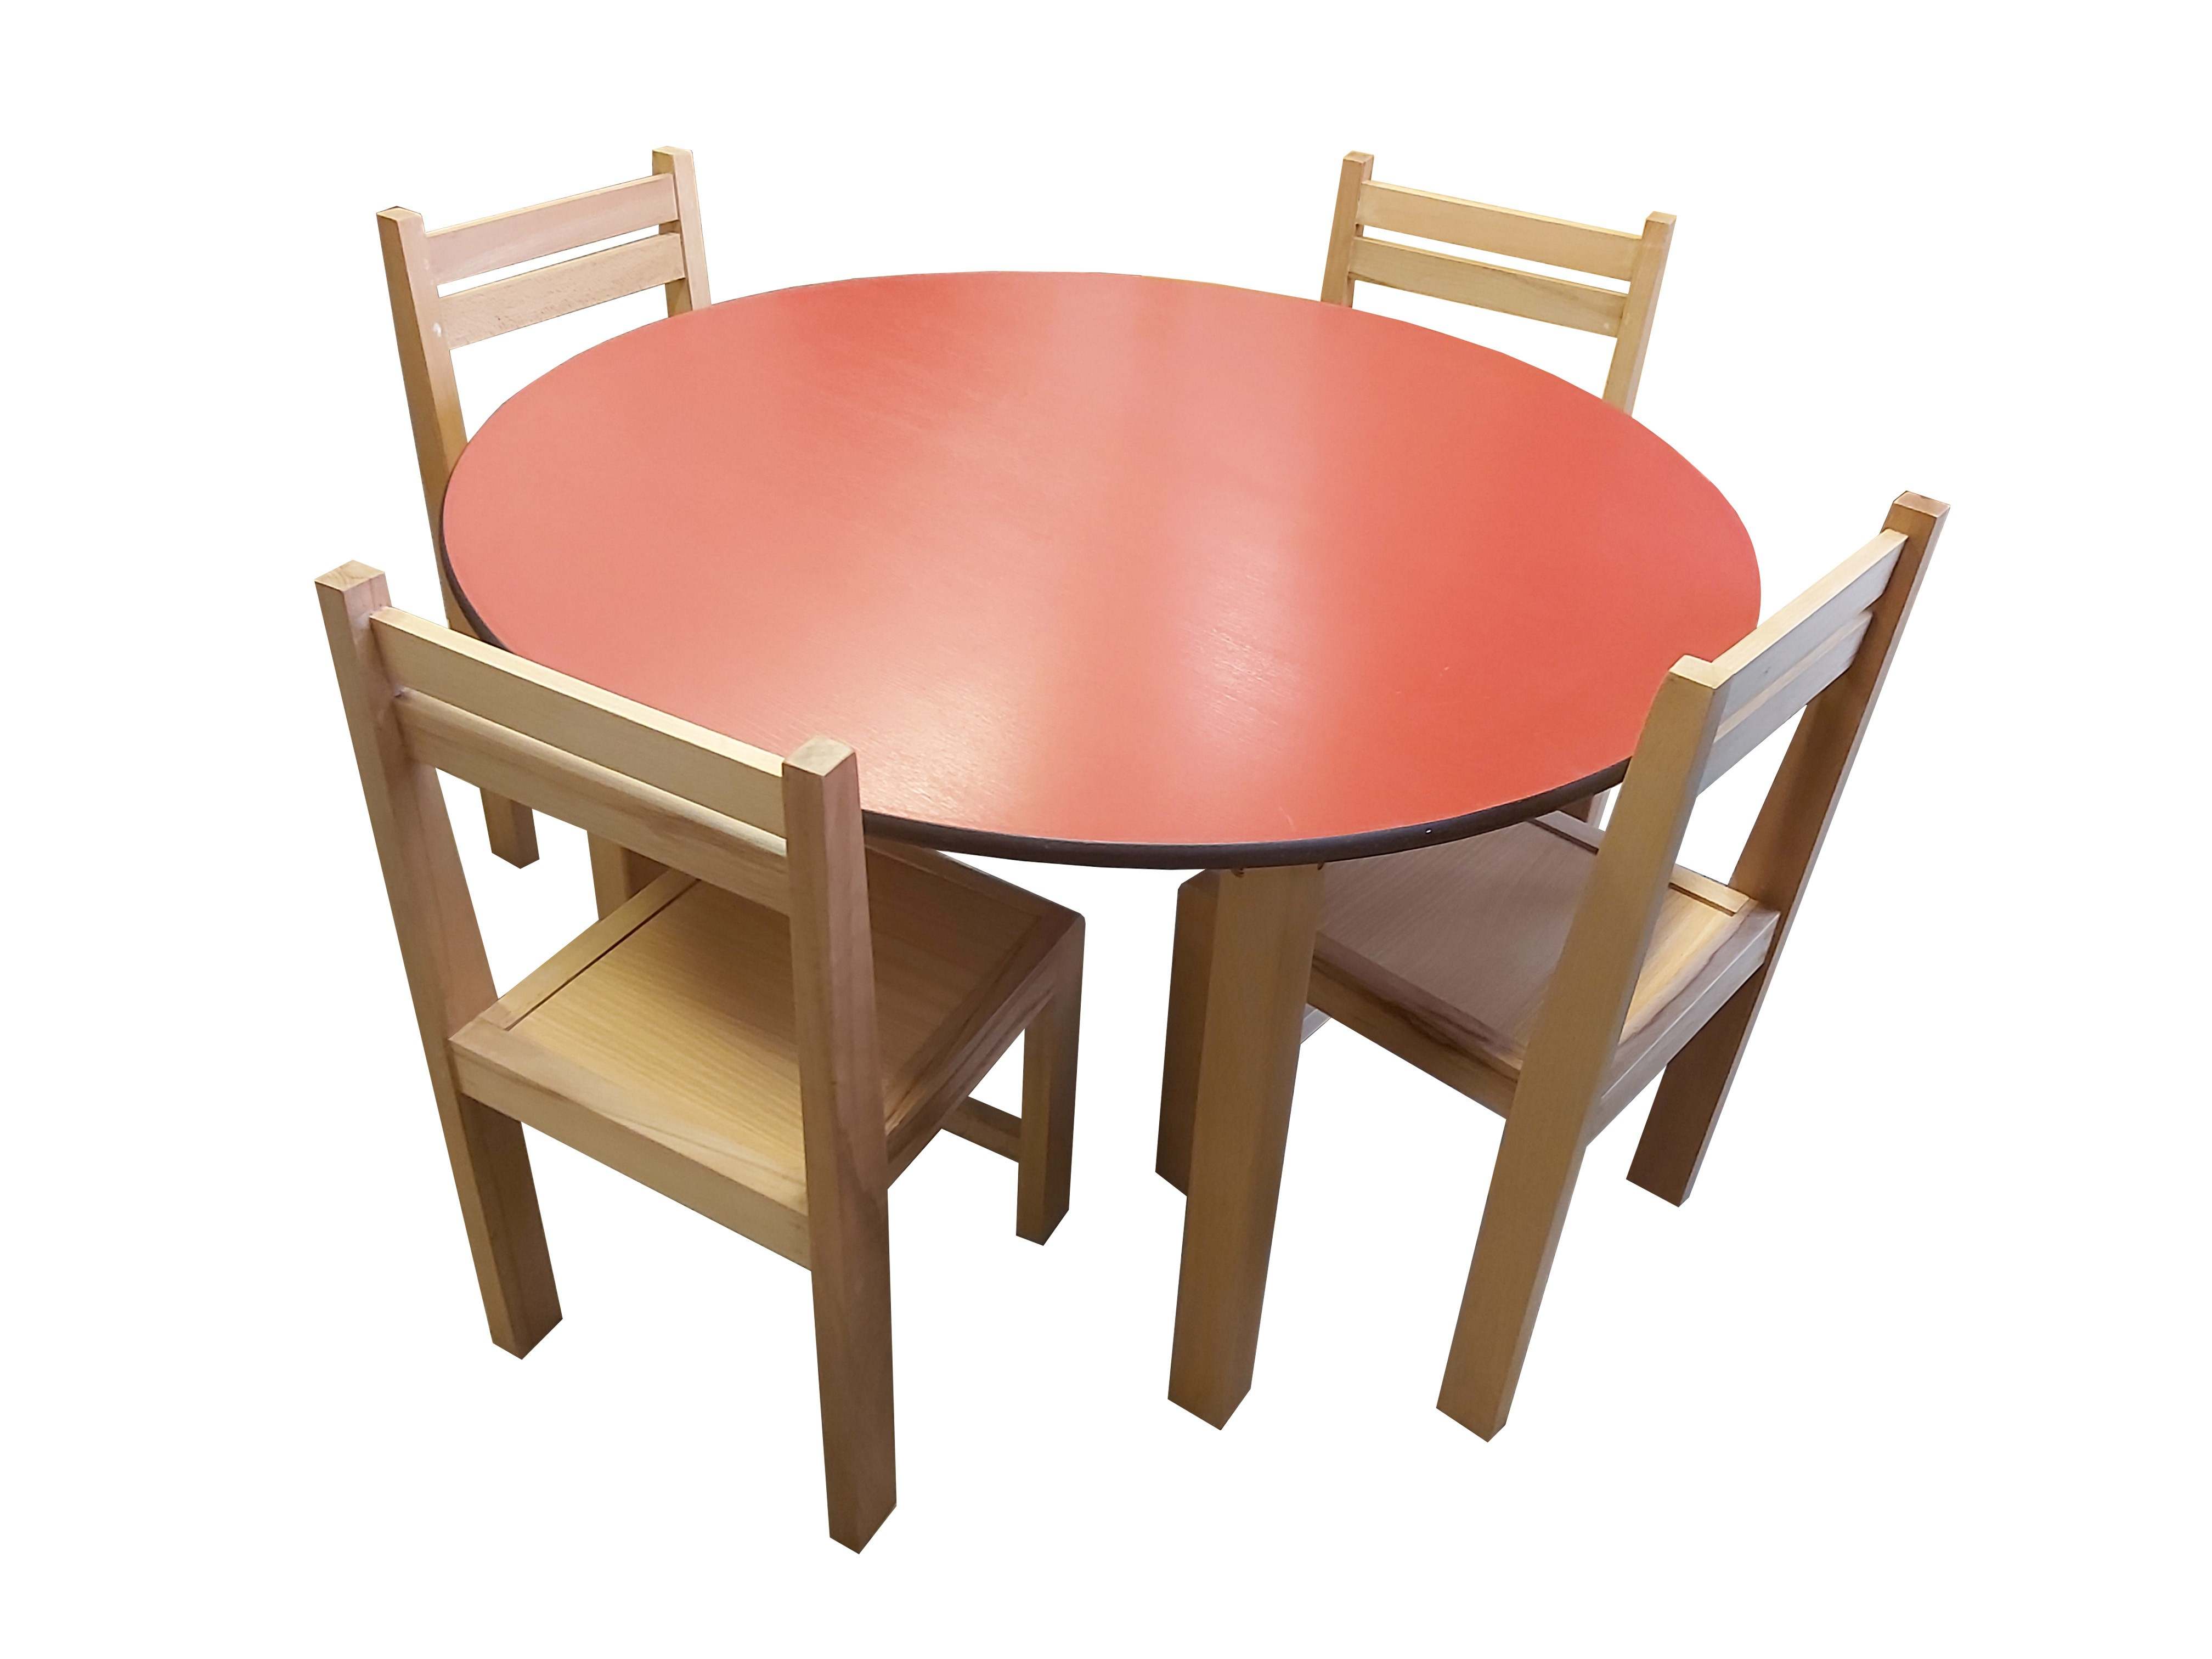 Kids Wooden Round Table And 4 Chair Set Red Top Phd London Uk